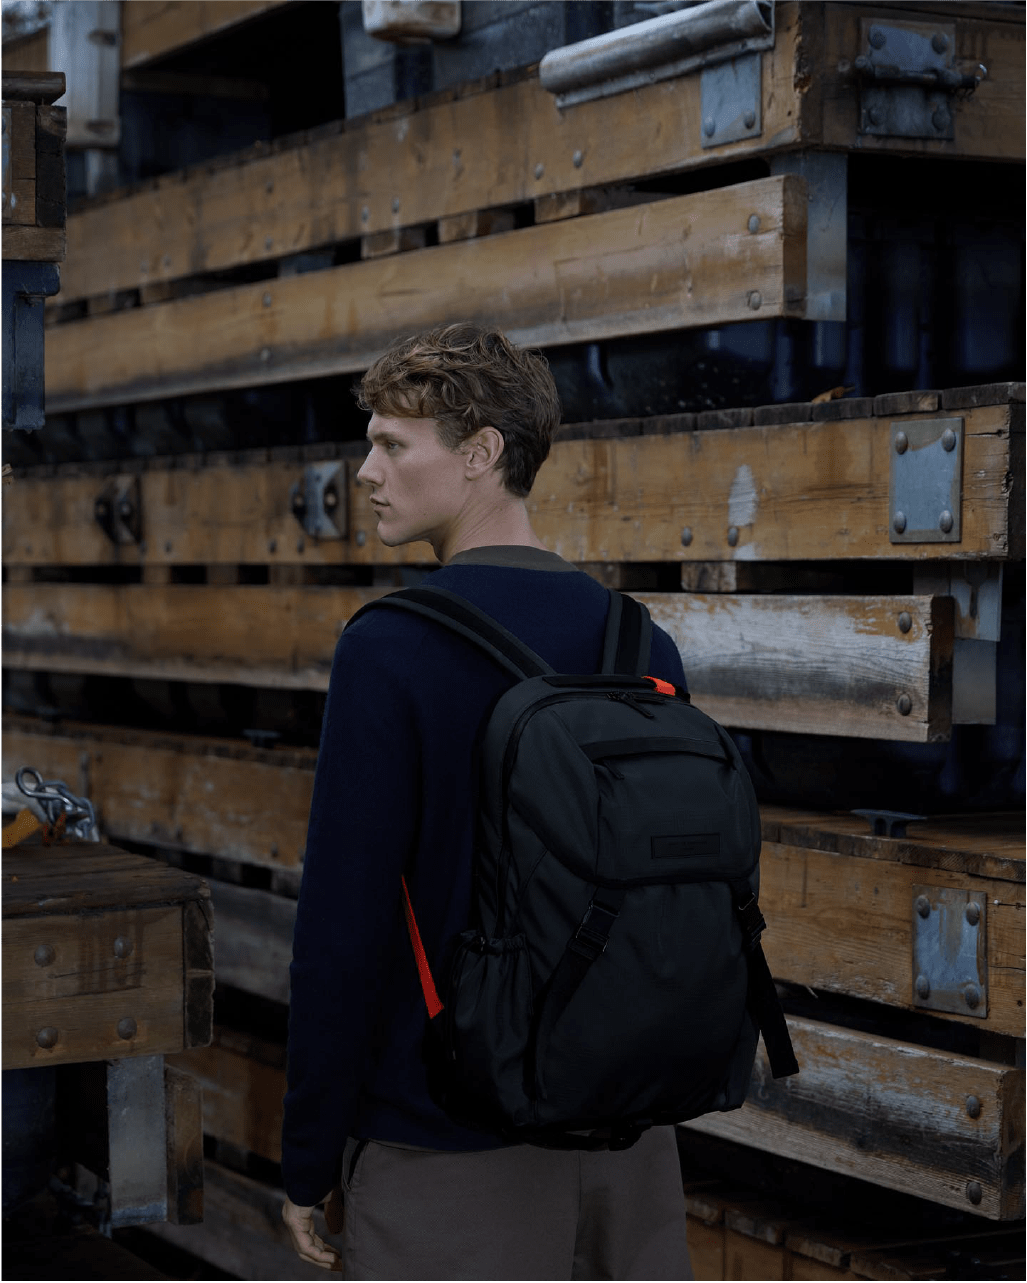 /collections/want-les-essentiels-pre-autumn-winter-2019?view=essentiels